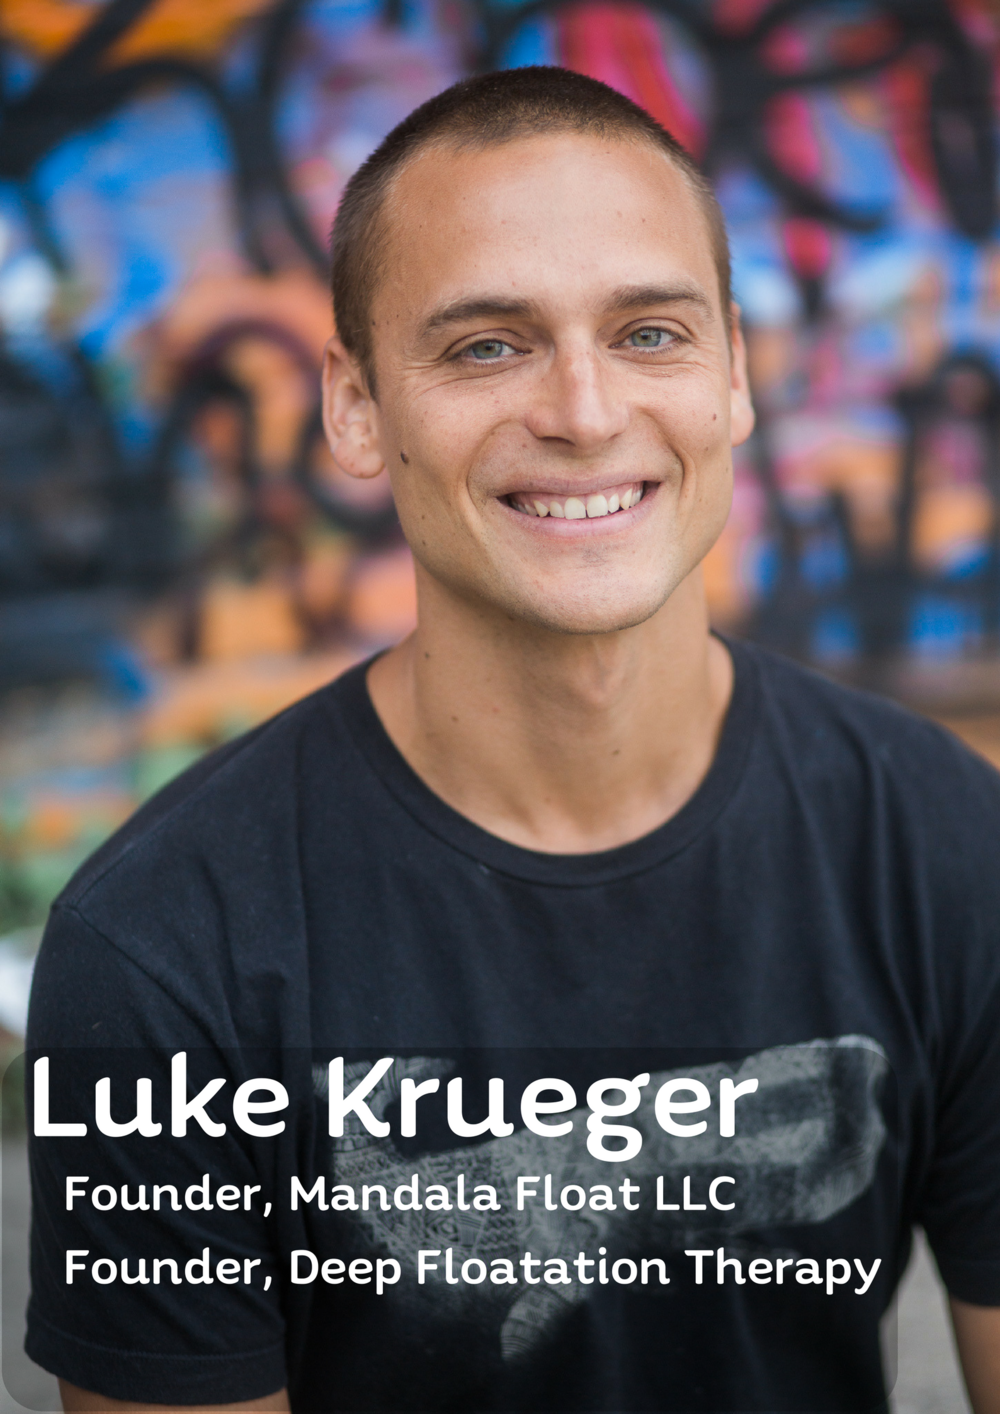 About Luke: - Prior to getting involved with floating in 2011 my primary professional background was in hospitality. After my first float I began to disattach from the work I was doing and started diving into the world of floating. First I attended the International Float Conference in Portland, Oregon, where I made some friends in the industry who ended up being invaluable resources on my journey. Next I did a 3 day internship in Colorado. Being present with the operators, customers, tasks, and lots of float time was the best thing I could have done in order to reach my goals. My second internship was in Alberta, where I had some theories confirmed and even more were completely reimagined. While some things we can research and learn from a distance, I believe that real life experience gives us what we need to move forward.After my first internship I found a used float tank in very bad shape, it literally showed up in damaged parts and pieces. Cleaning, repairing, reconstructing, and eventually floating in that tank was a huge learning experience that I would later draw on when creating Mandala products.My partner Monica and I offered floating to the public out of our home one summer with that tank, and we saw enough interest to validate our desire to open a commercial float center. Then began our 3 year journey to find an adequate space, secure funding, and construct the float center we were dreaming of and talking about every single day. We negotiated in depth with 5 different locations and I built comprehensive floorplans for each of those spaces. It was exhausting.Thankfully we eventually found the space that works, negotiated a great long term lease, and began construction. 6 months later Deep was born, and next to my children it is one of the things I am most proud of in my life. Coming here to float and to share this special space with others is a continual source of insight, inspiration, and gratitude.My goal when consulting is to help people be creative and efficient when planning and building their float center. It fills my cup to be of service in this tiny beloved niche that is not only an industry, it is an involved and enriching practice.